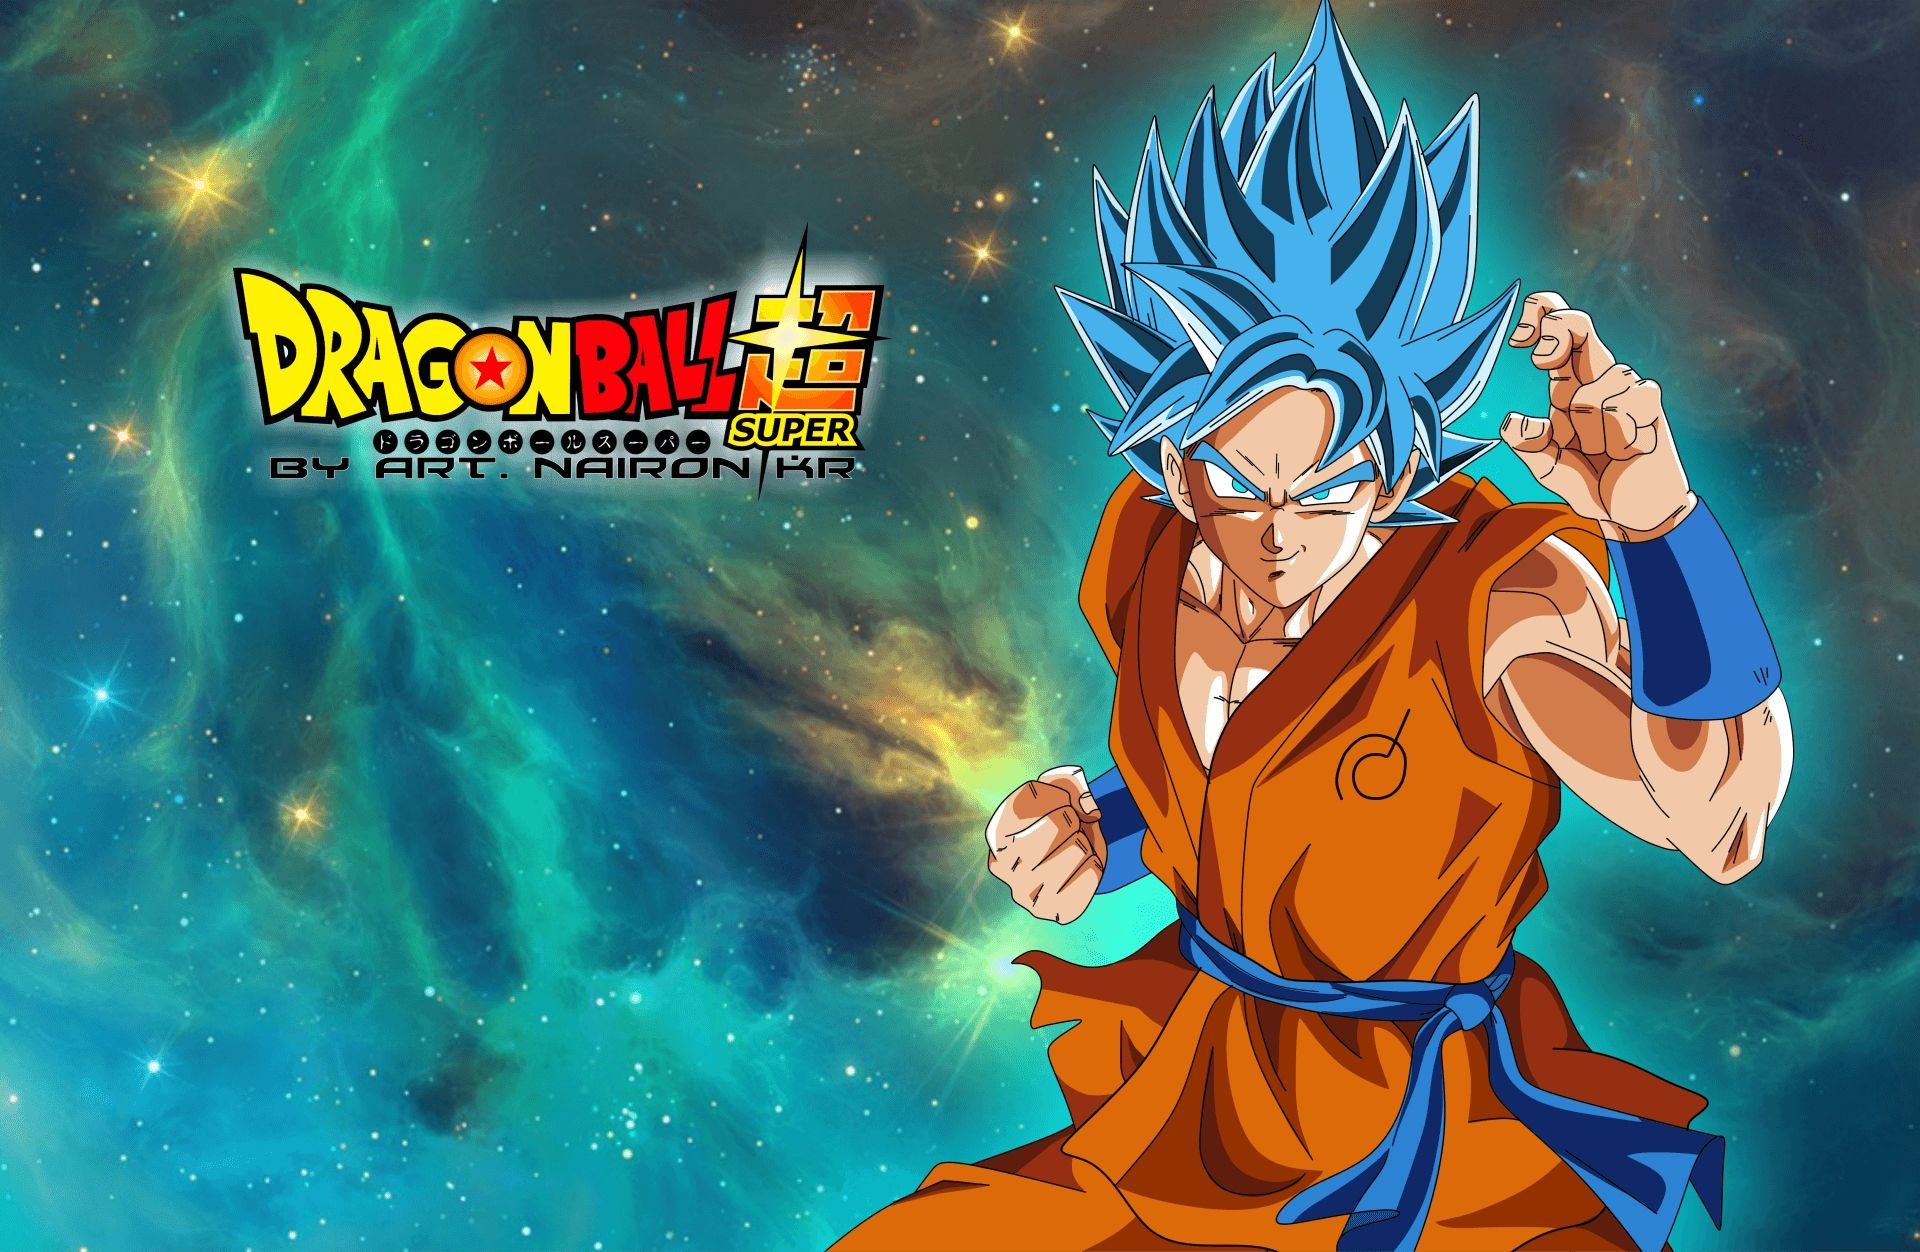 10 Top Dragon Ball Super Wallpaper Full Hd 1920 1080 For Pc Background Anime Dragon Ball Super Dragon Ball Super Dragon Ball Super Wallpapers